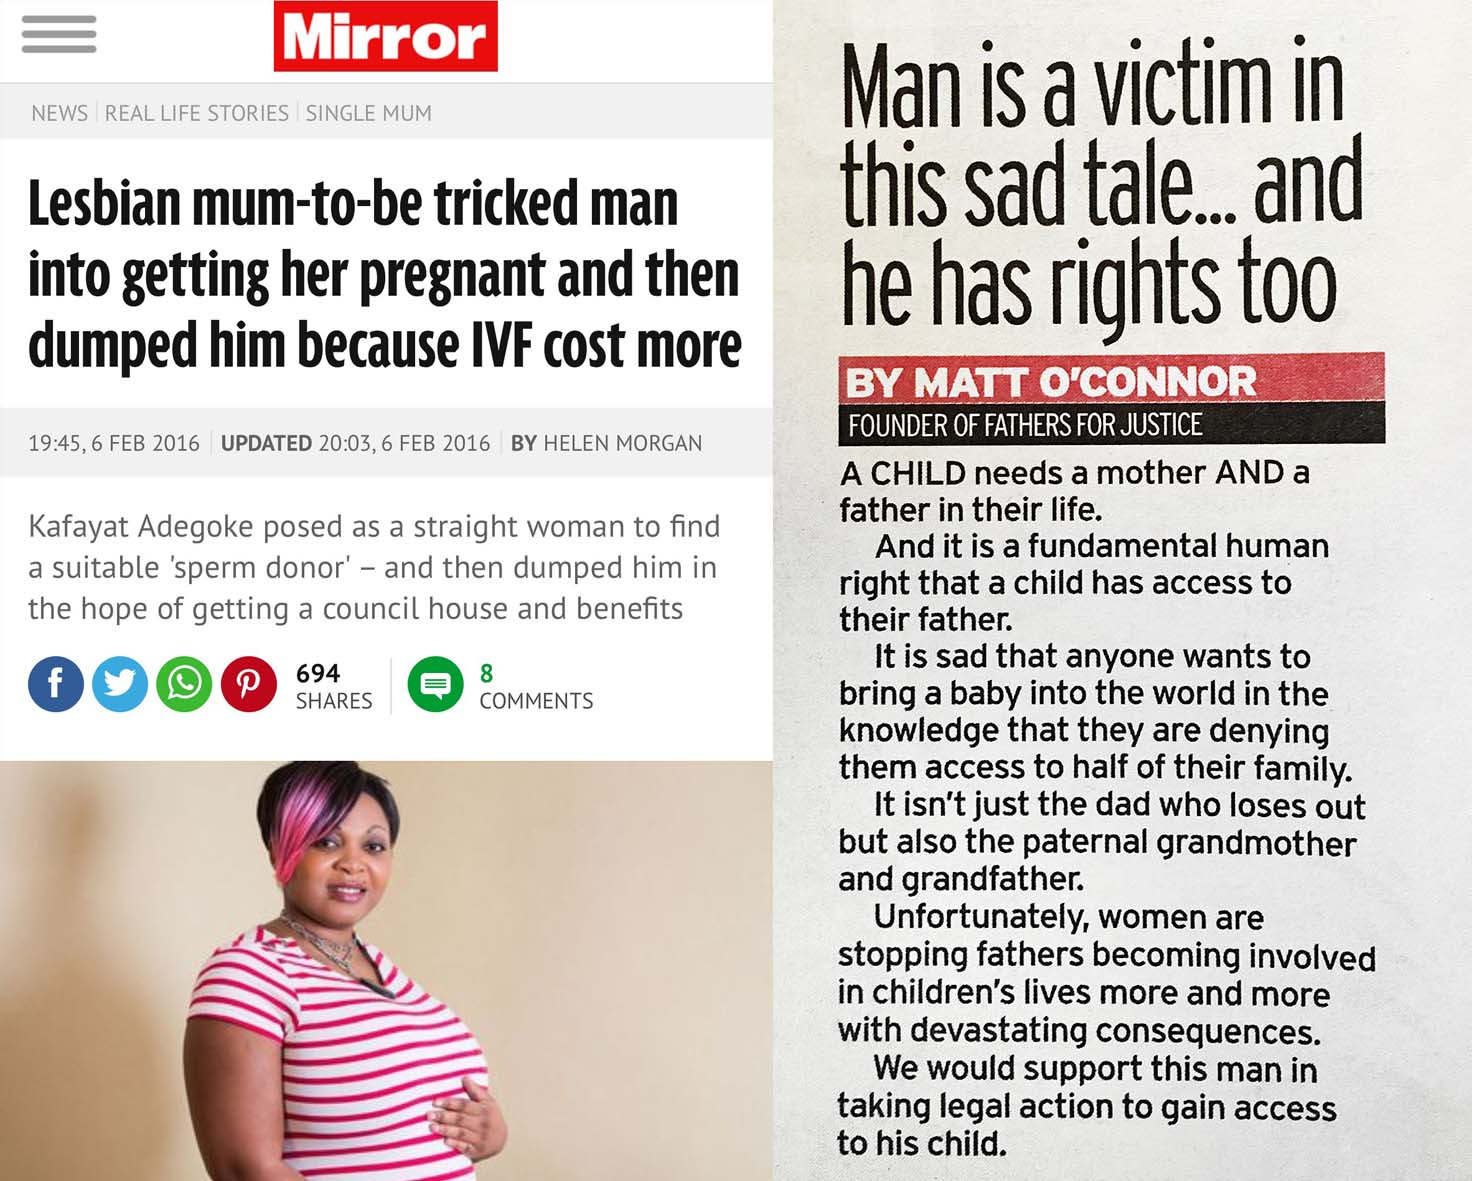 lesbian mum tricked man into getting her pregnant - we are